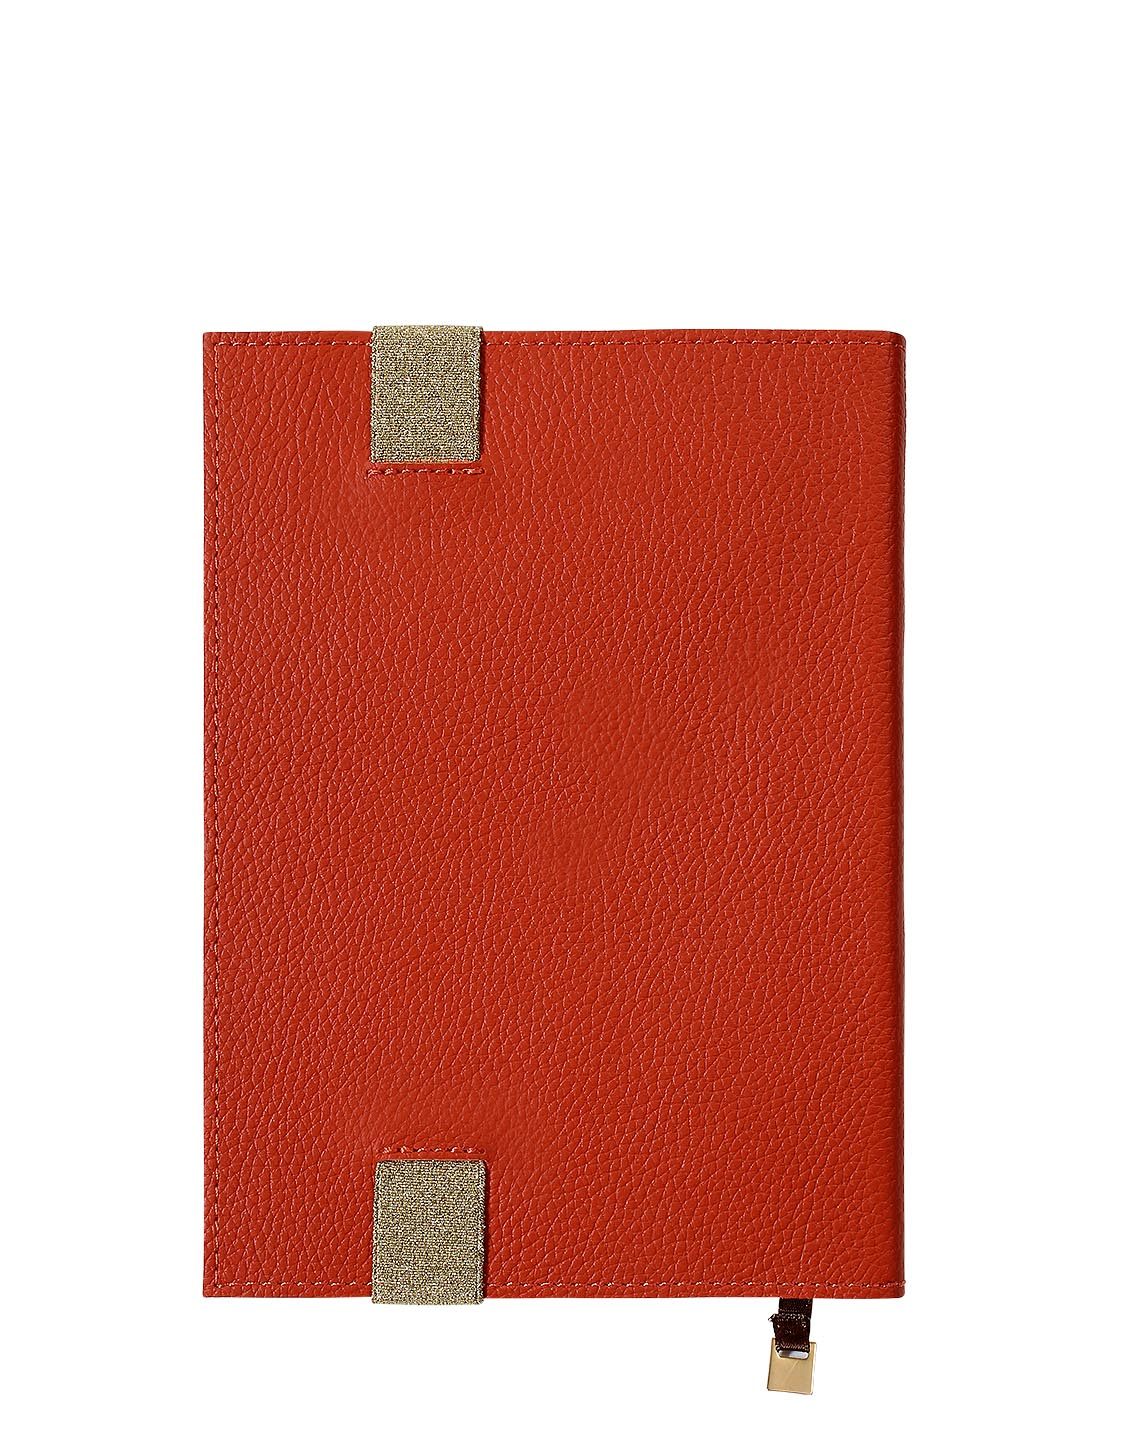 Agenda AG-104 Color Naranja